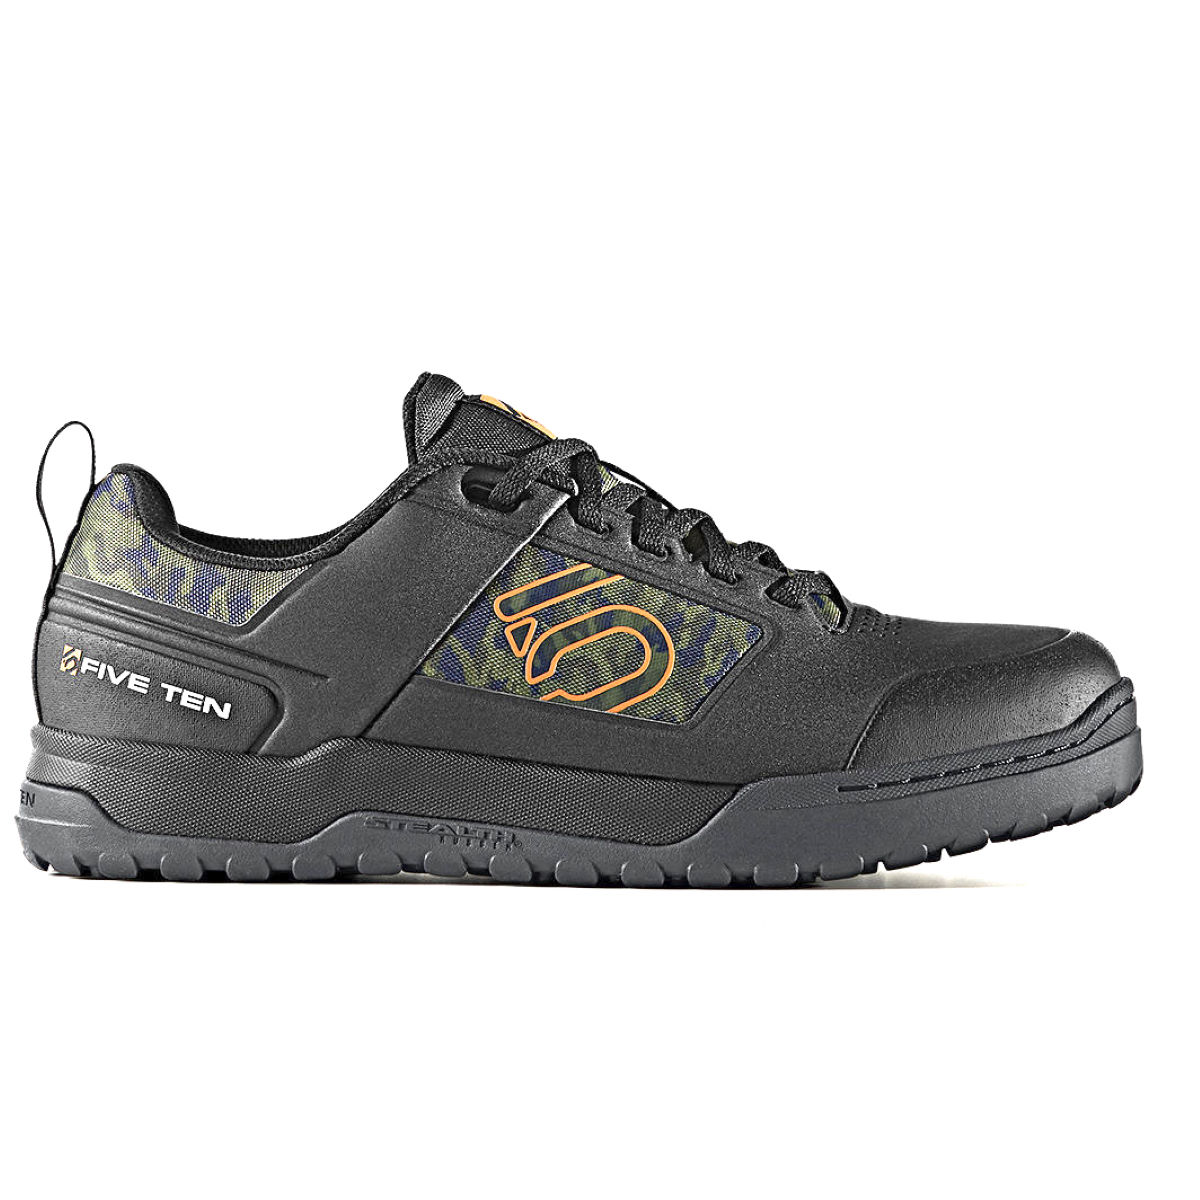 Zapatillas de MTB Five Ten Impact Pro - Zapatillas MTB